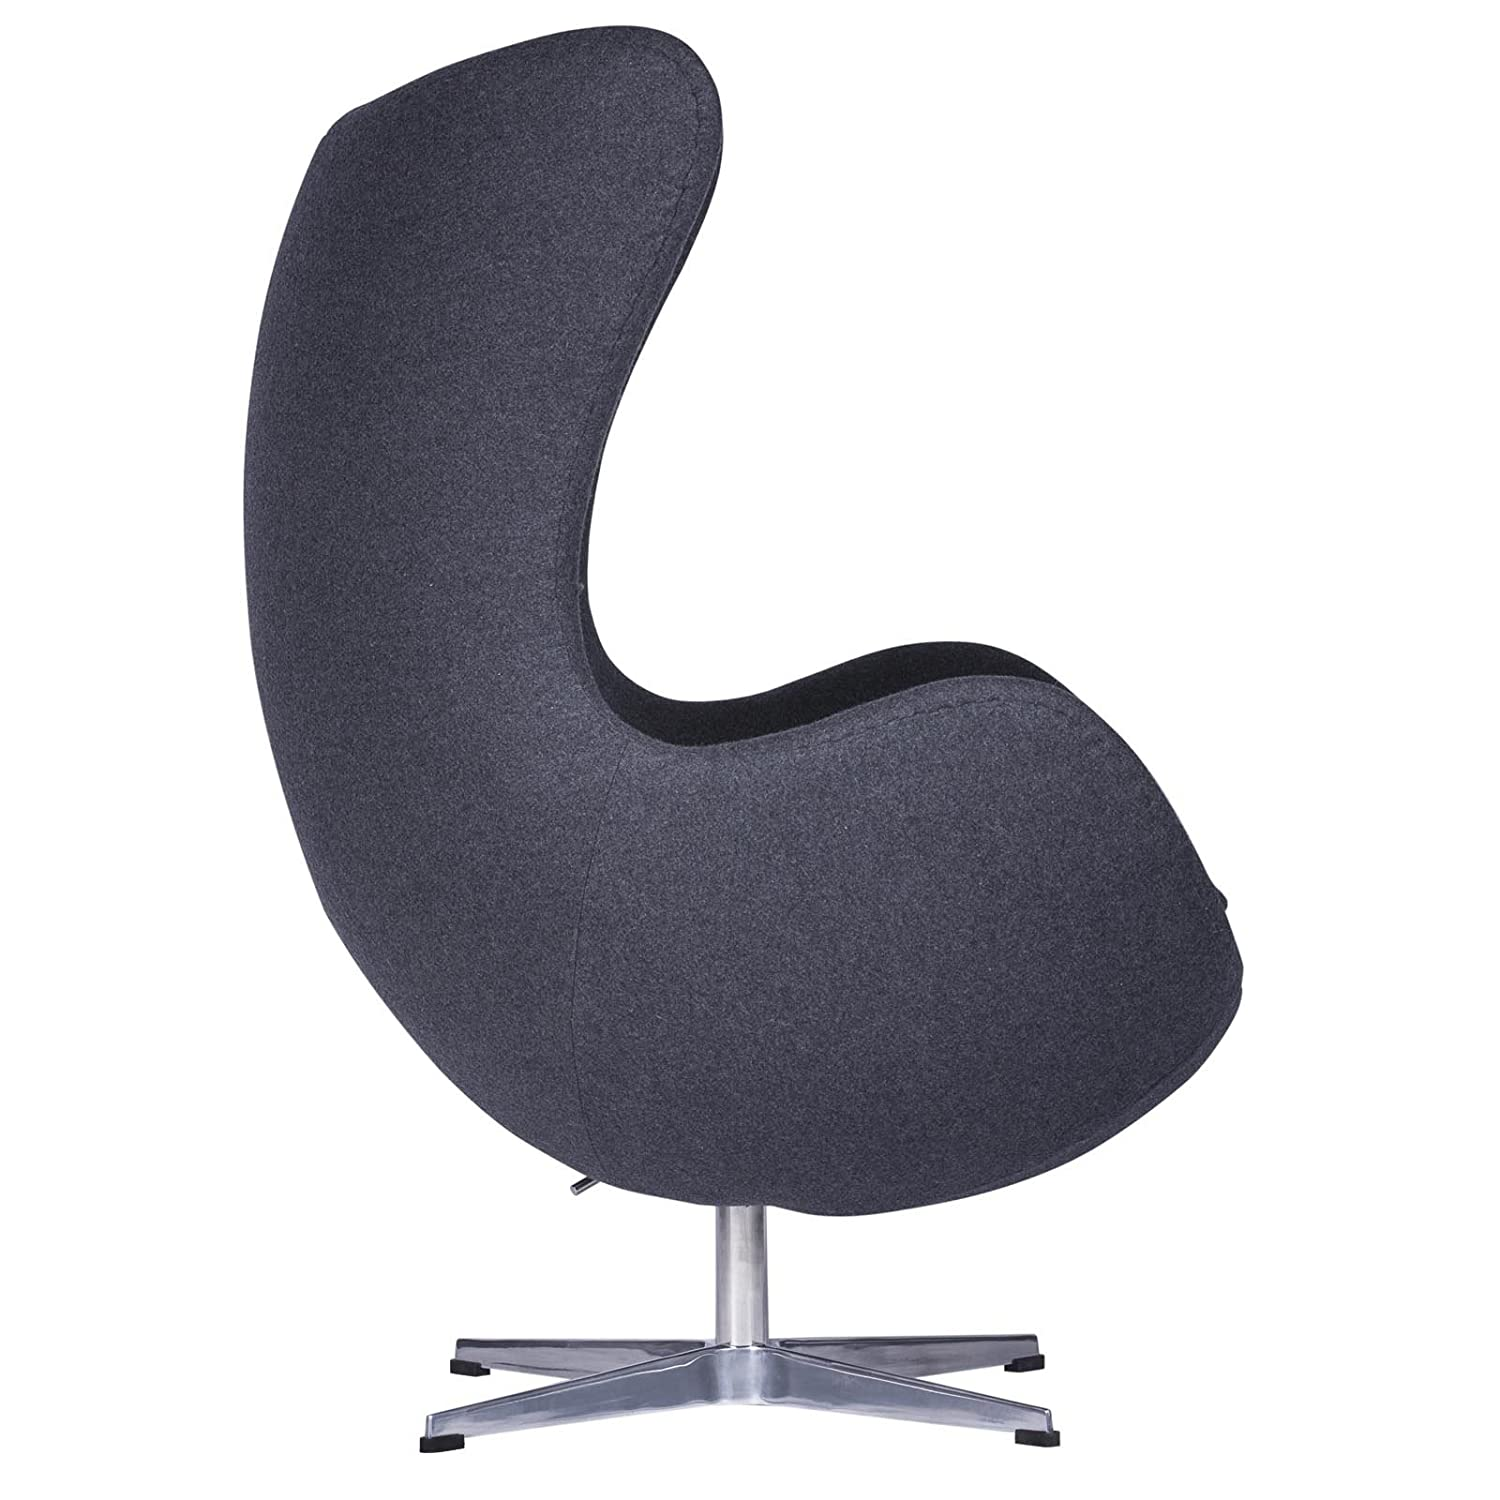 Amazon LeisureMod Arne Jacobsen Egg Chair in Dark Gray Wool